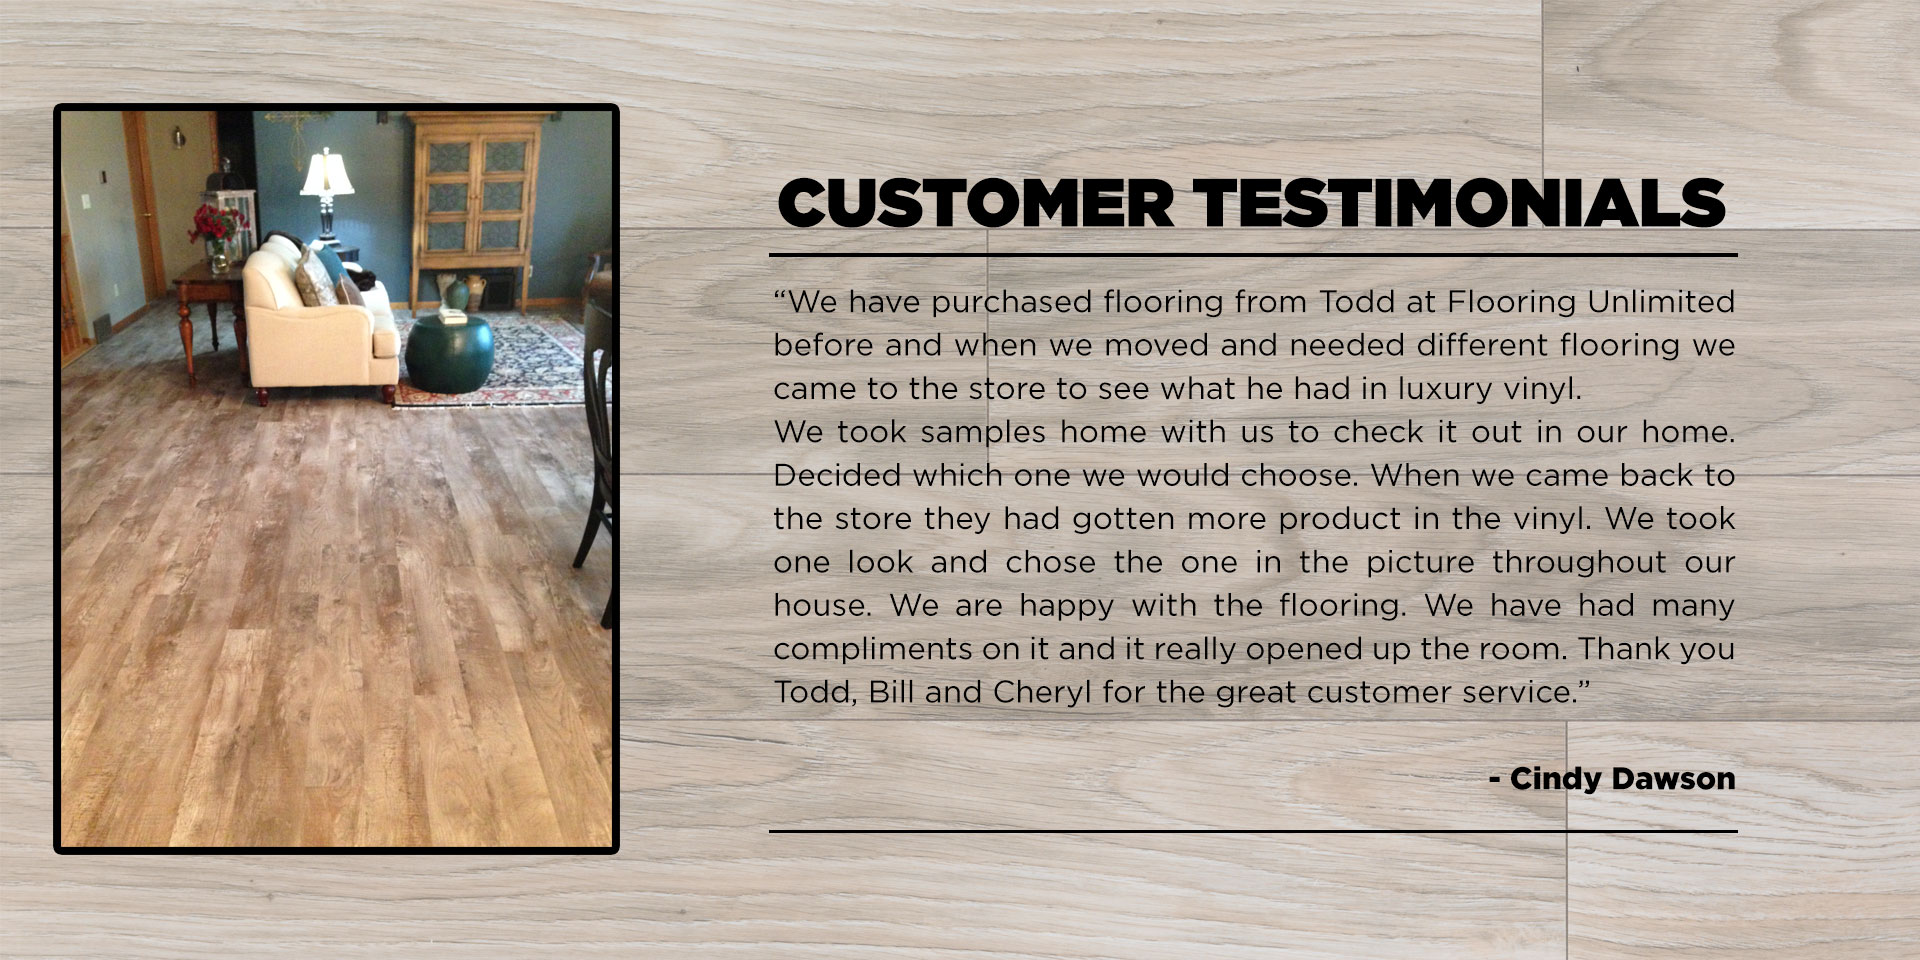 flooring unlimited | customer testimonials